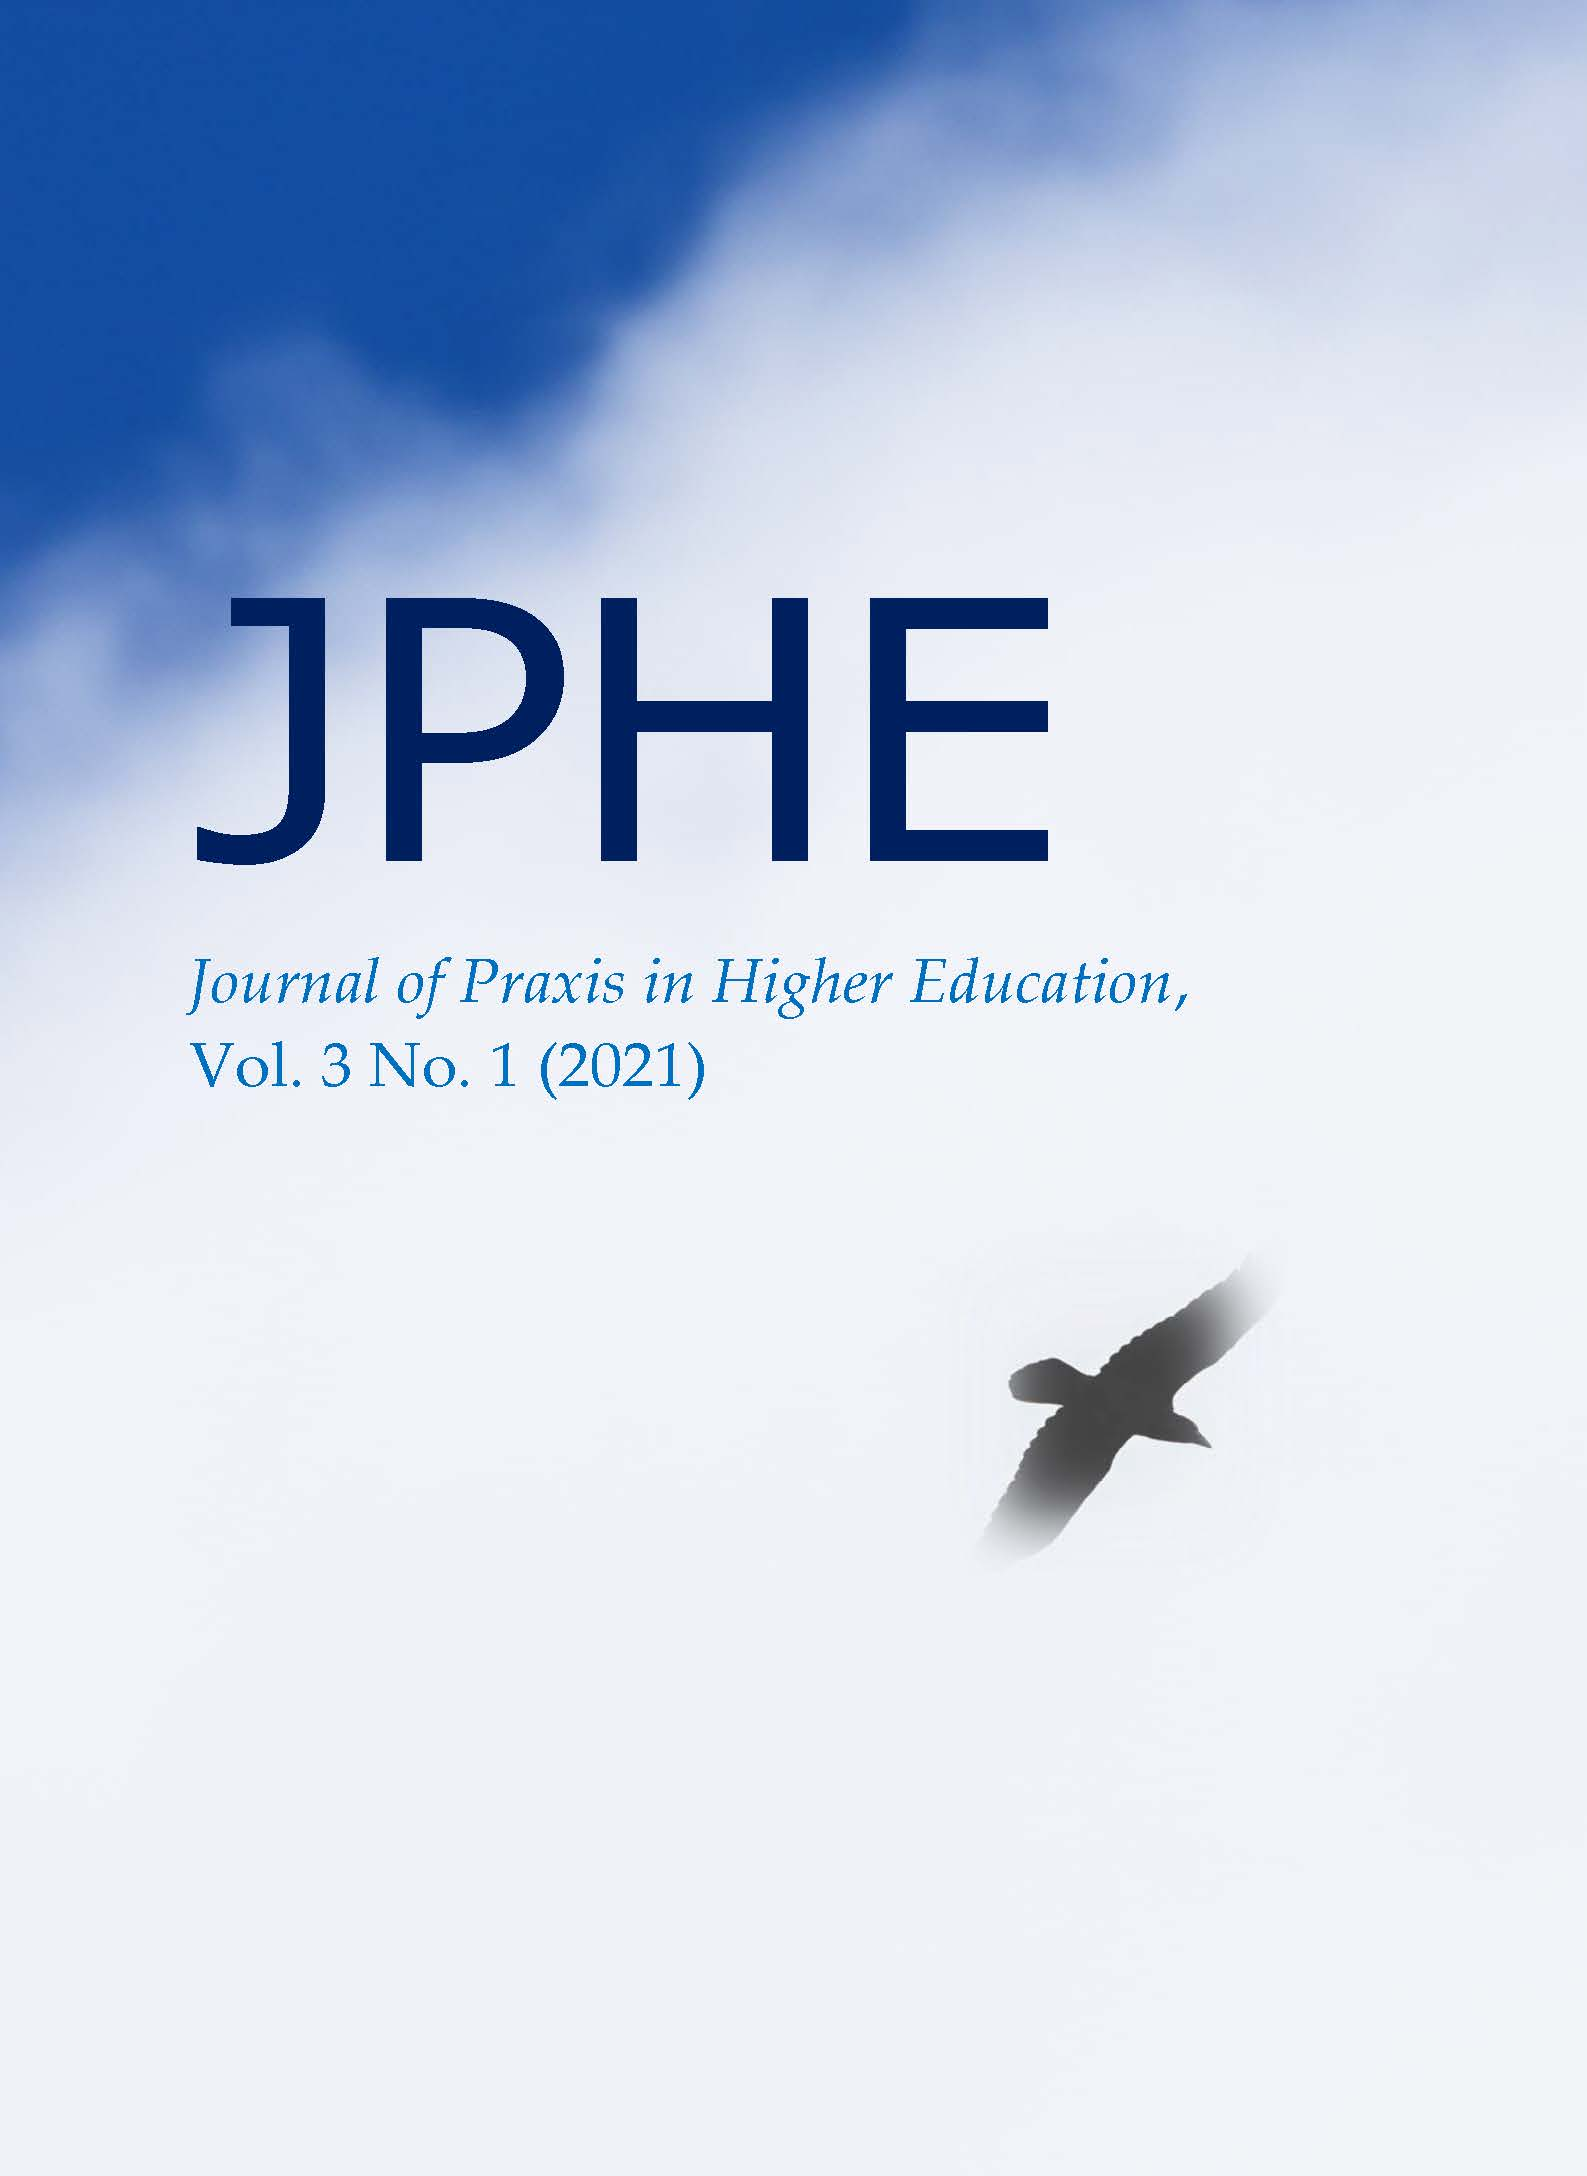 View Vol. 3 No. 1 (2021): Journal of Praxis in Higher Education